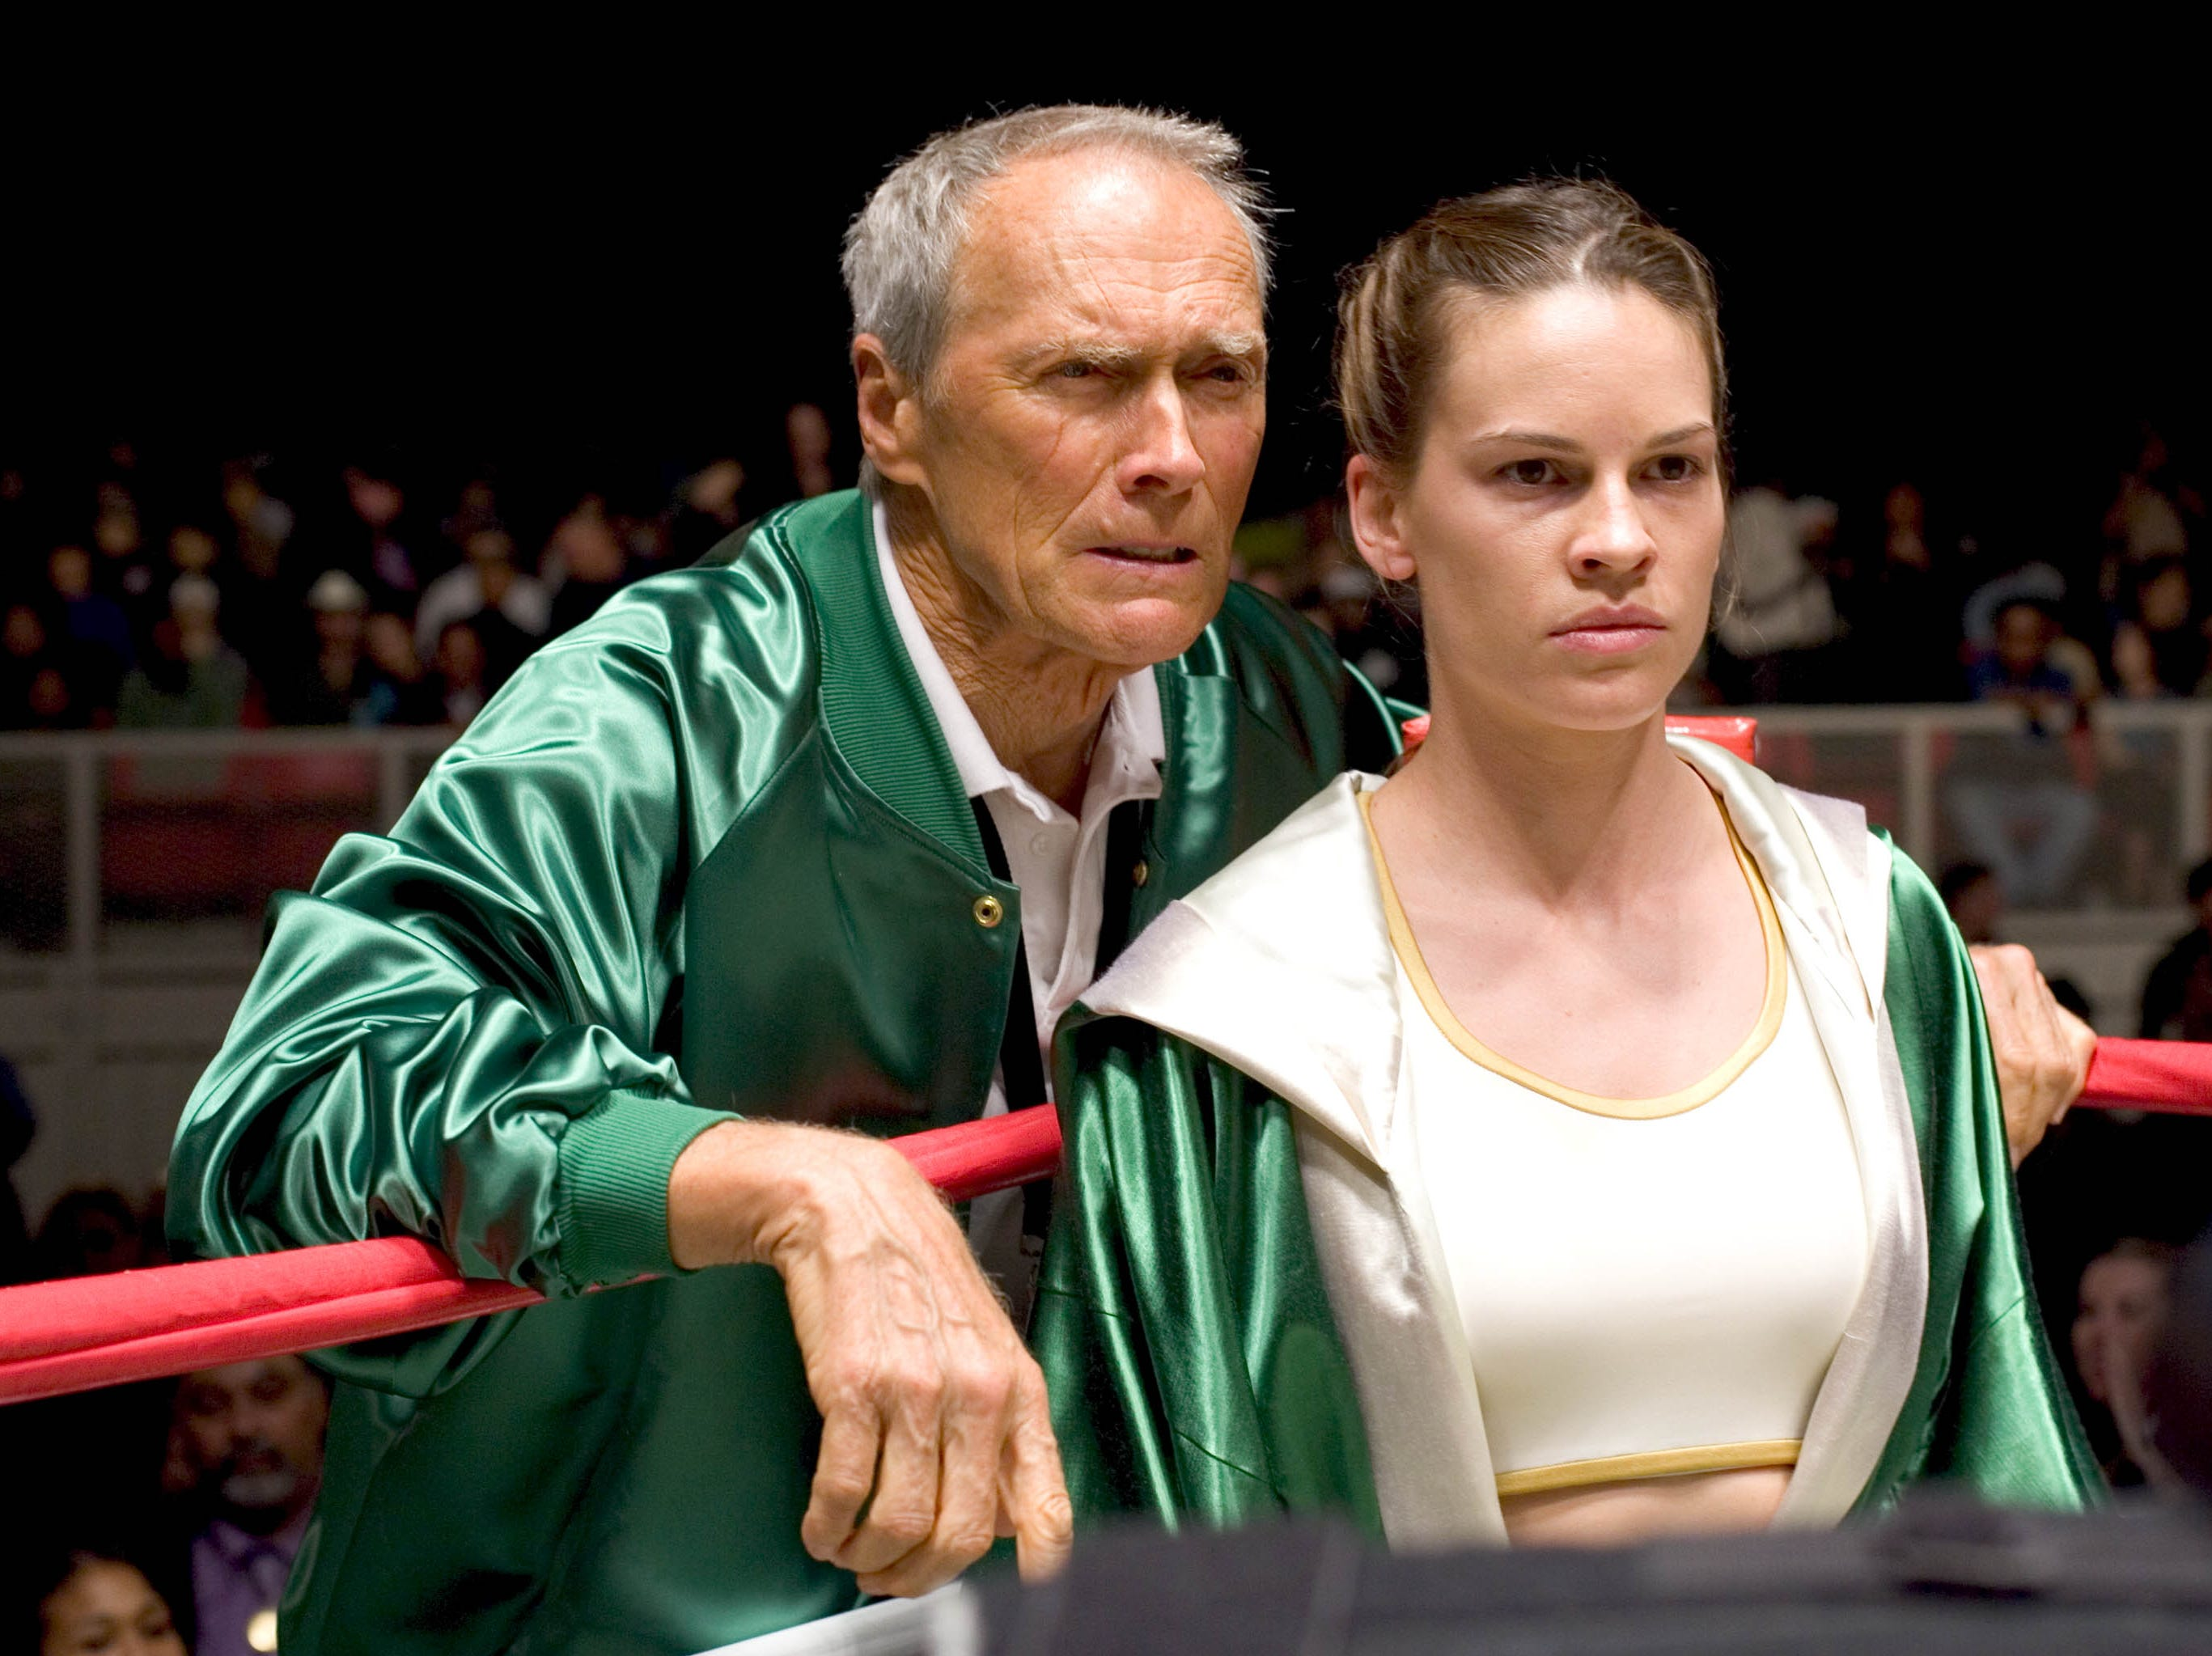 Clint Eastwood and Hilary Swank in a scene from the motion picture 'Million Dollar Baby.'